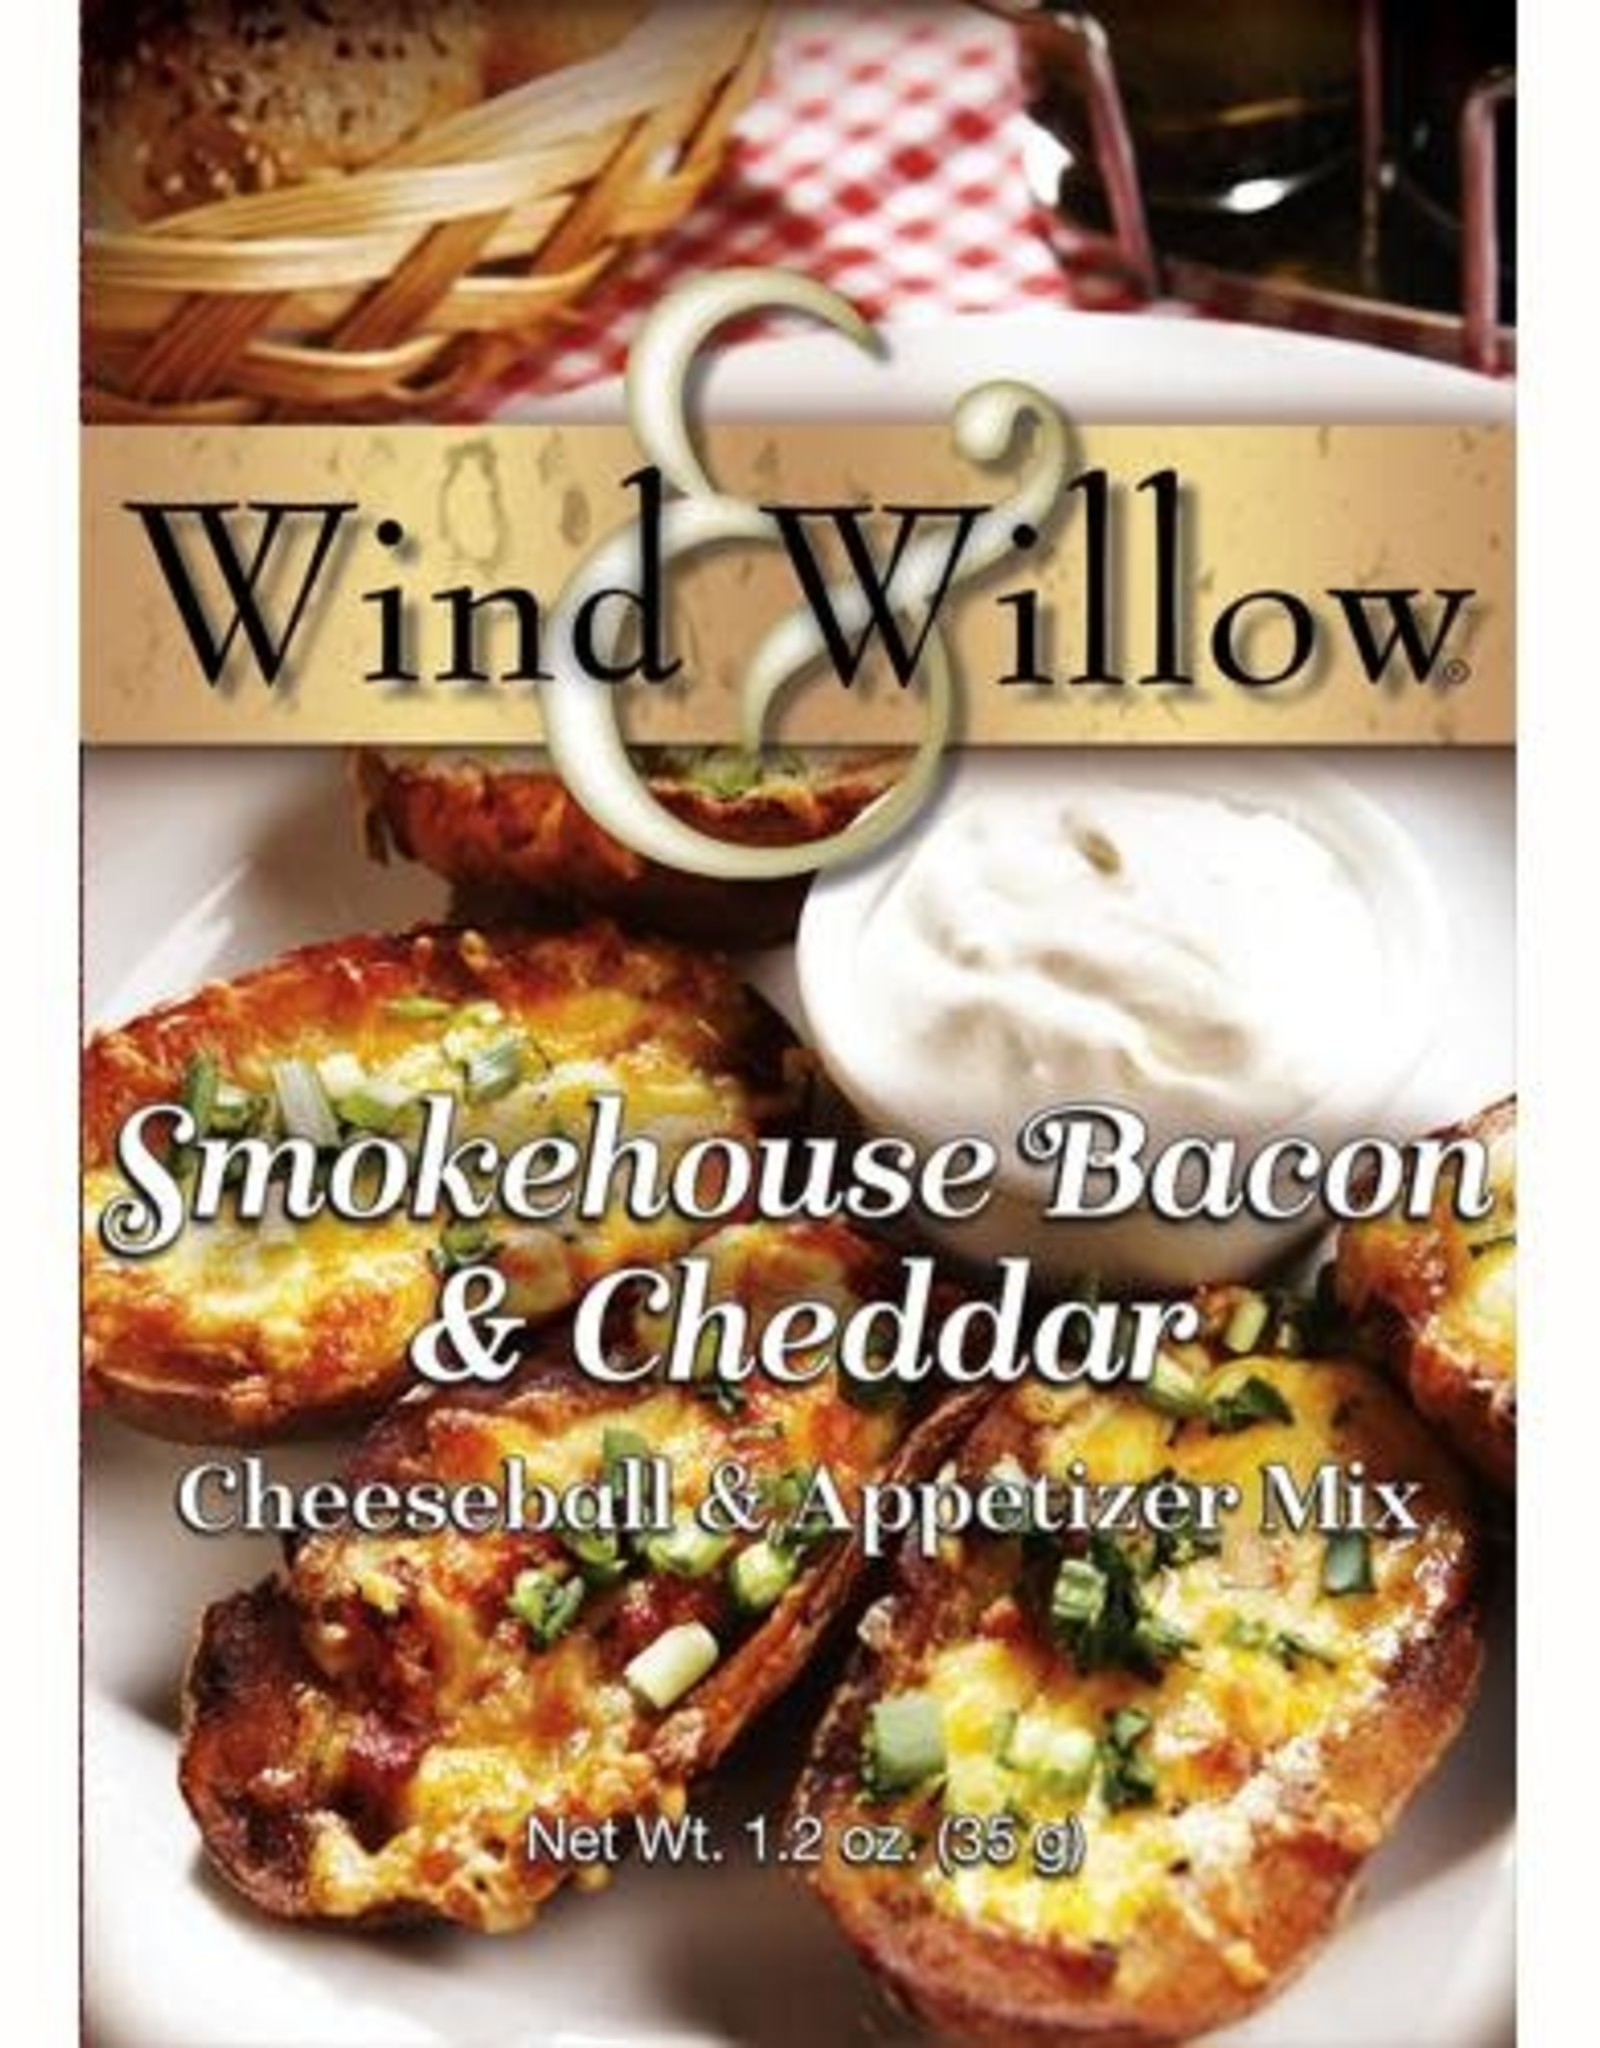 Wind & Willow SmokeHouse Bacon/Cheddar